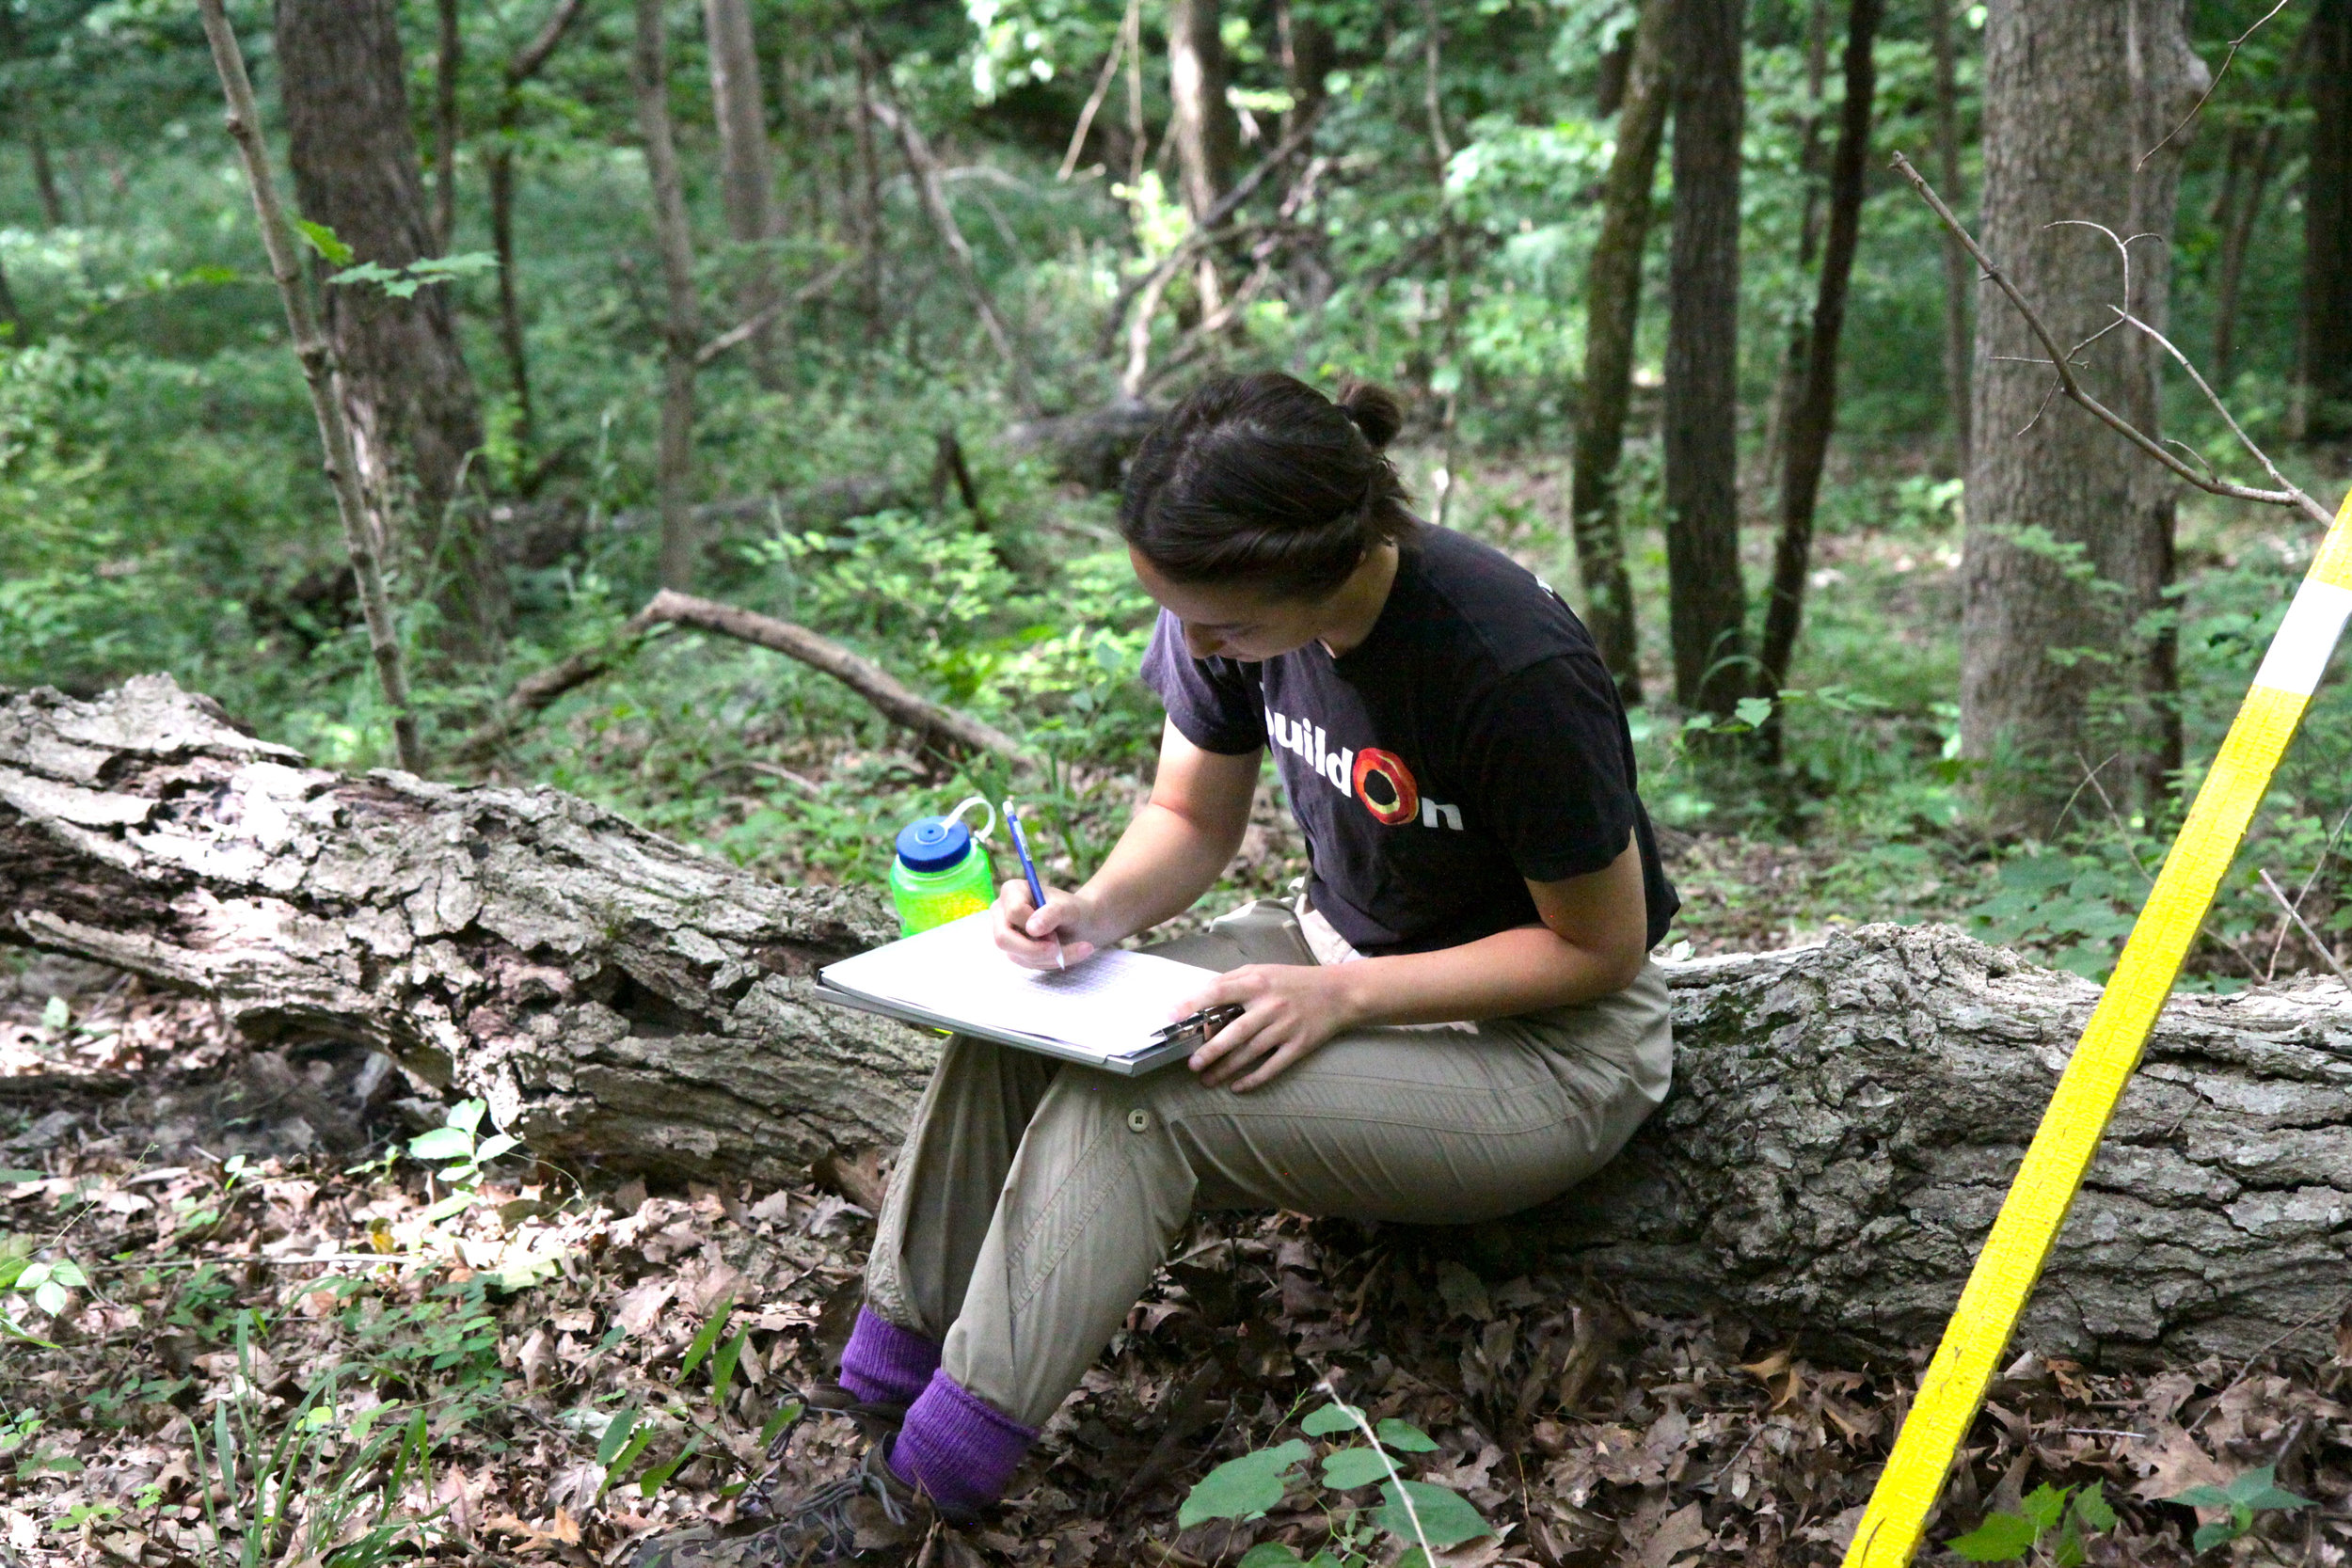 """It encouraged me to think outside of the box as far as possibilities involving ecology/environmental science careers. I realize that while academia is still an option for me, I could also consider going the route of some of the lecturers and working for botanical gardens or a number of other places, or going into education as I really enjoyed the tiered mentorship."""